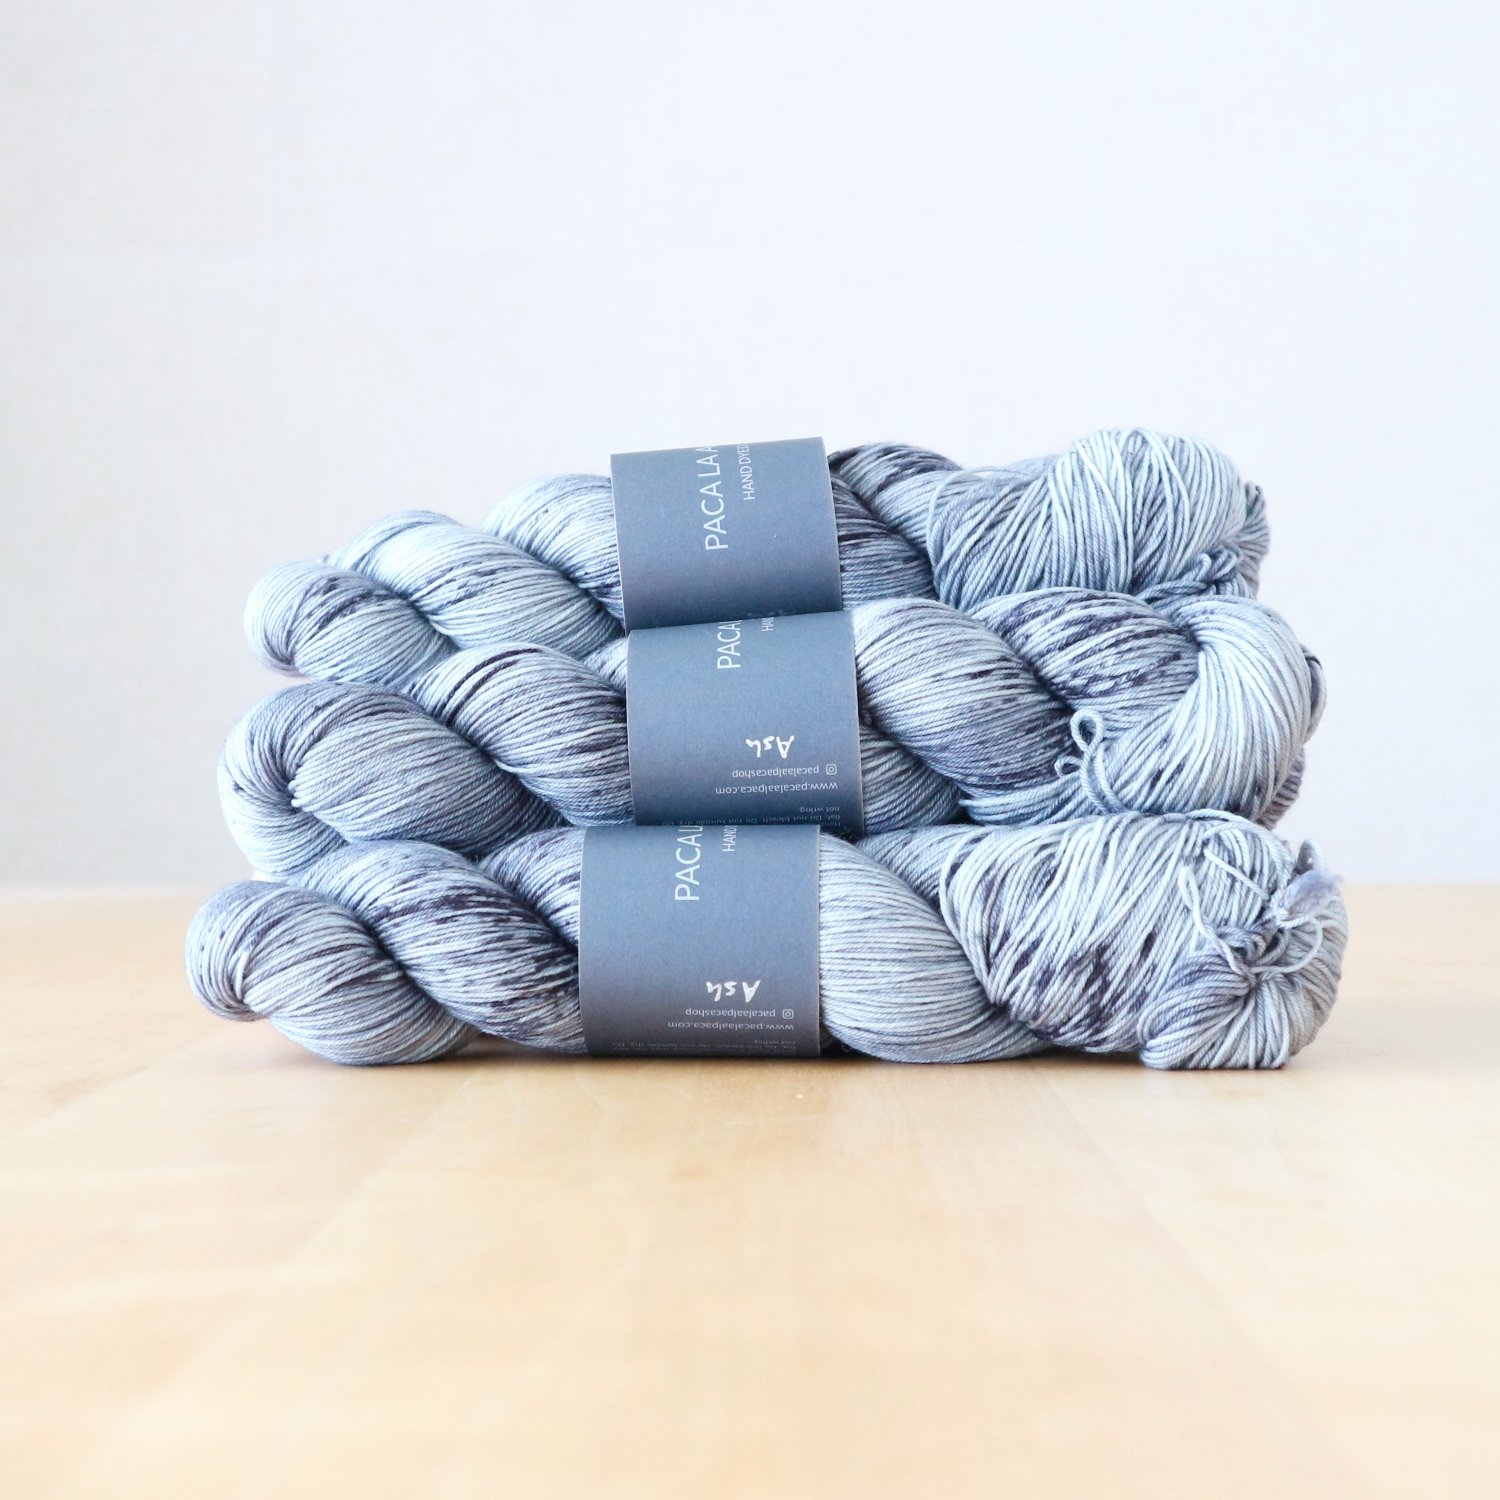 【Paca La Alpaca】<br>Superwash Merino Sock 4Ply<br>Ash